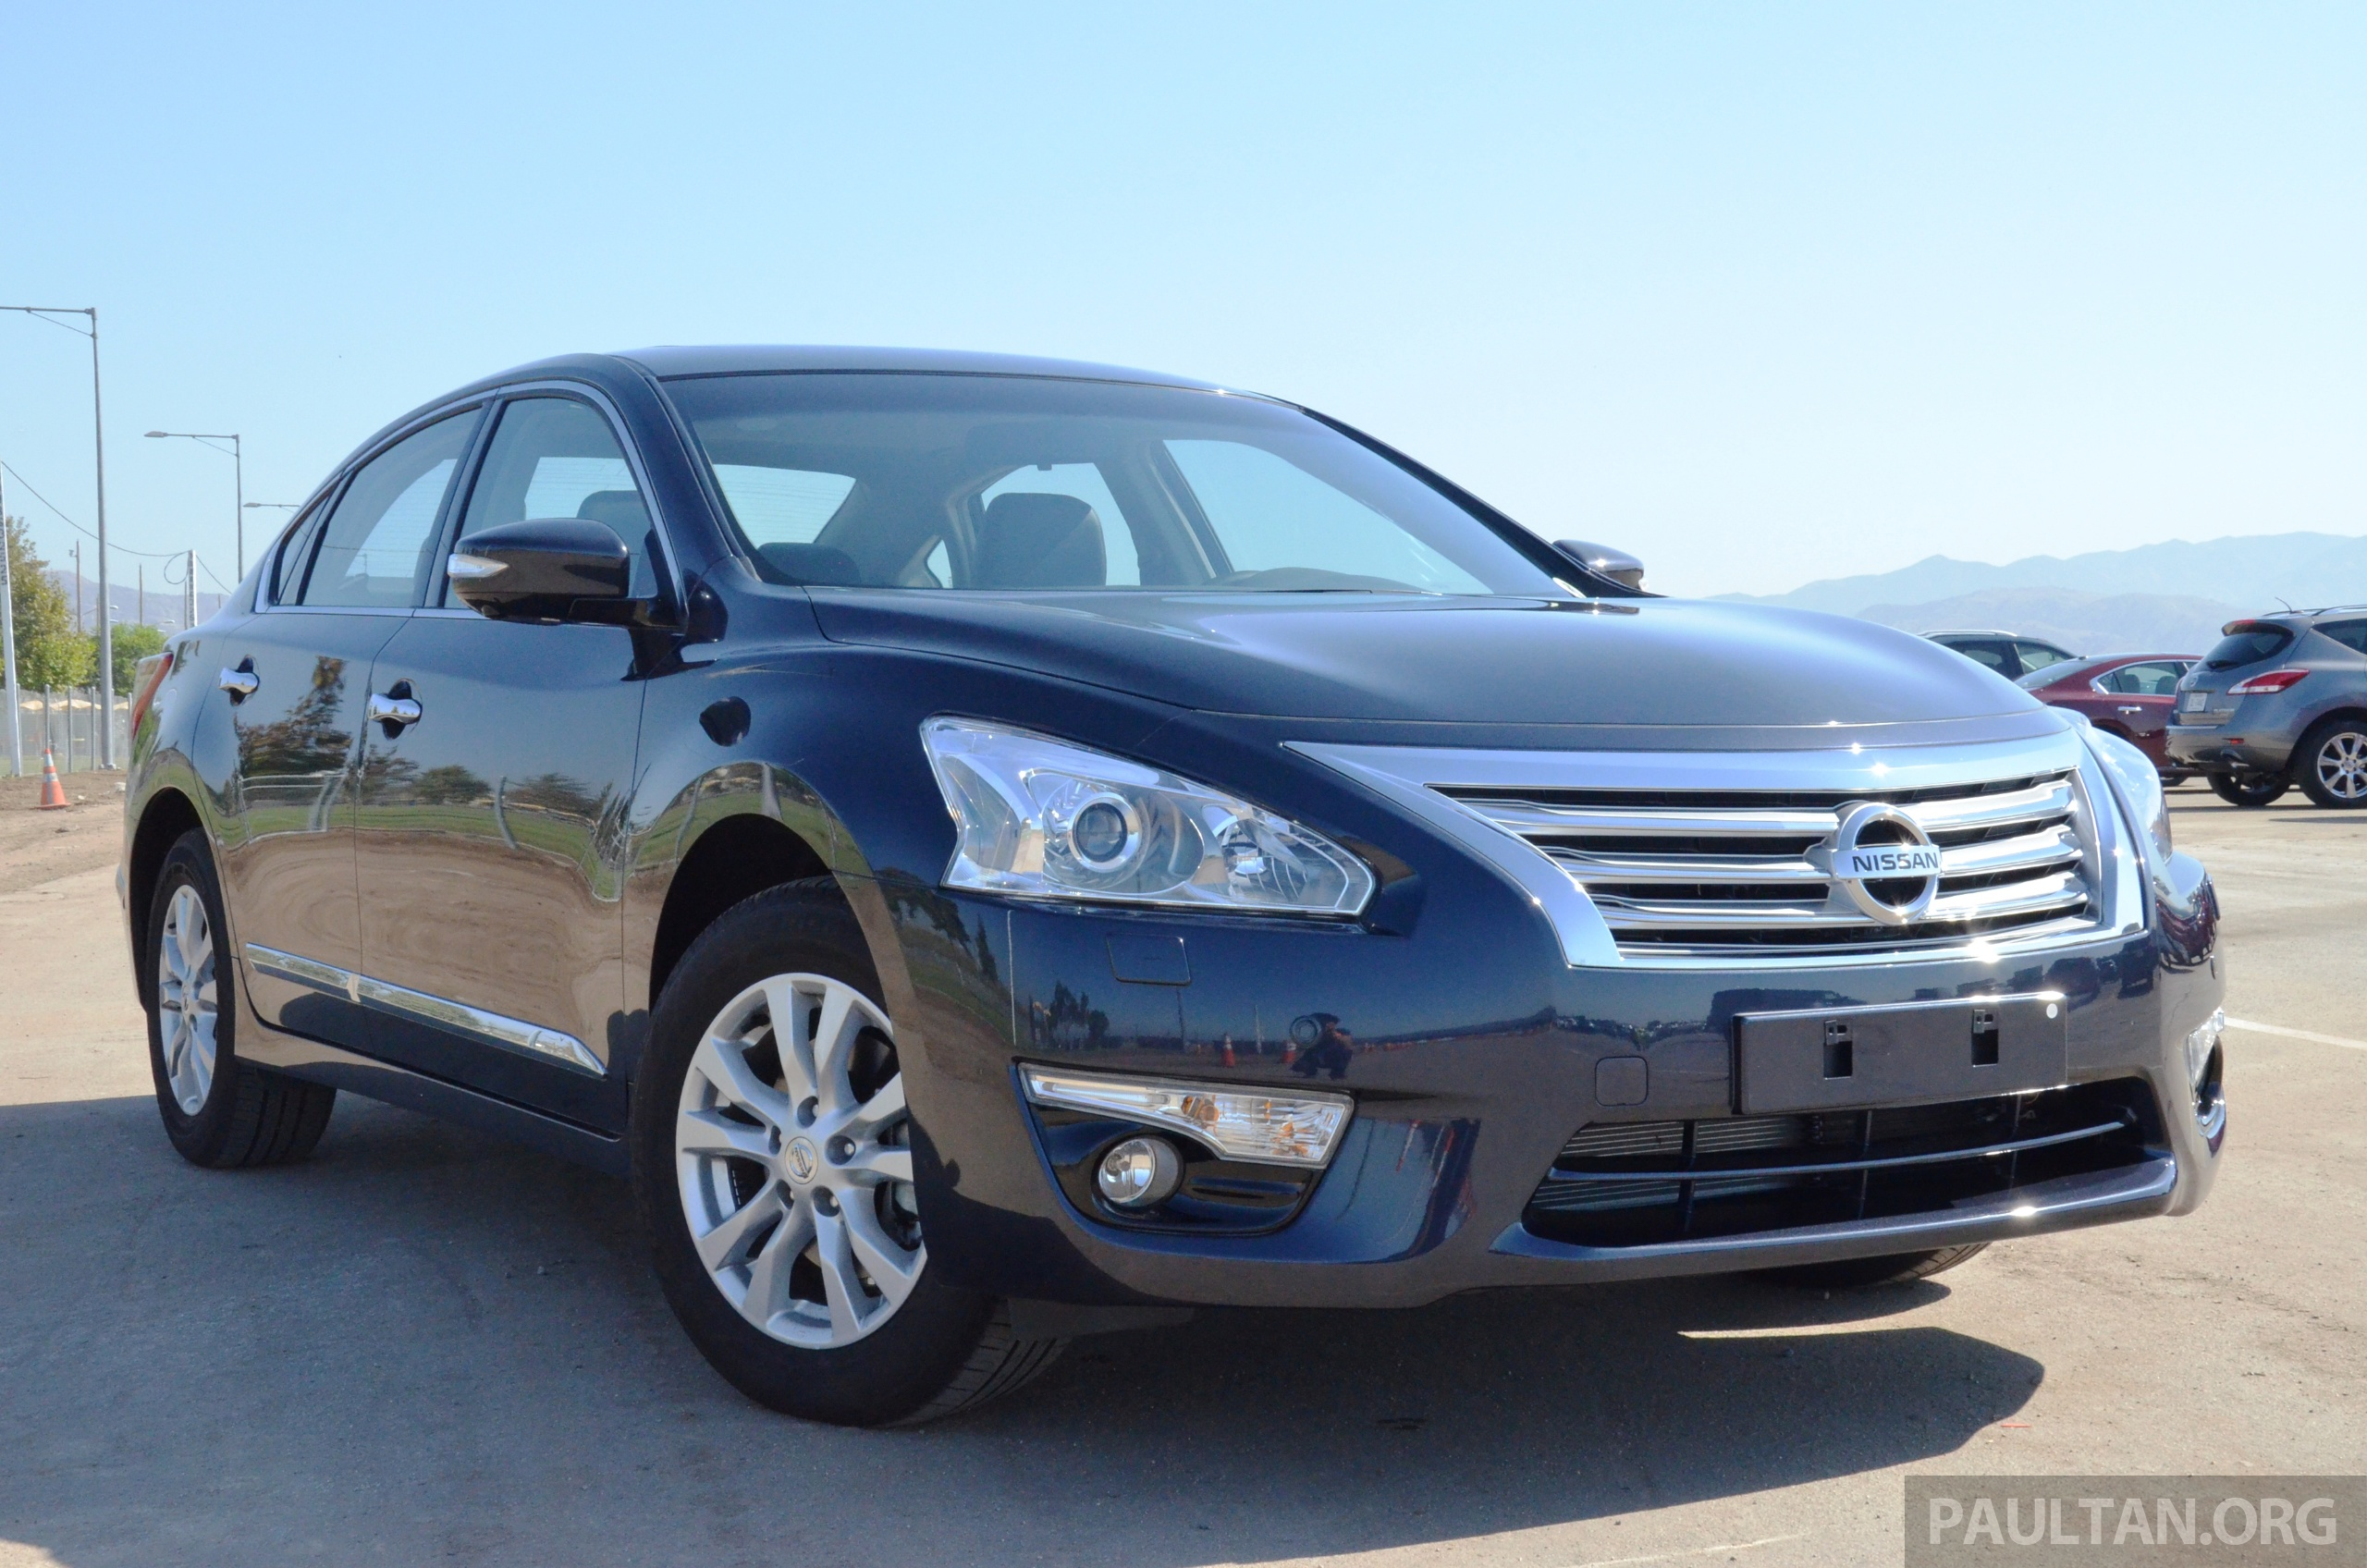 2014 Nissan Teana 2 5 L33 Review At Nissan 360 Event